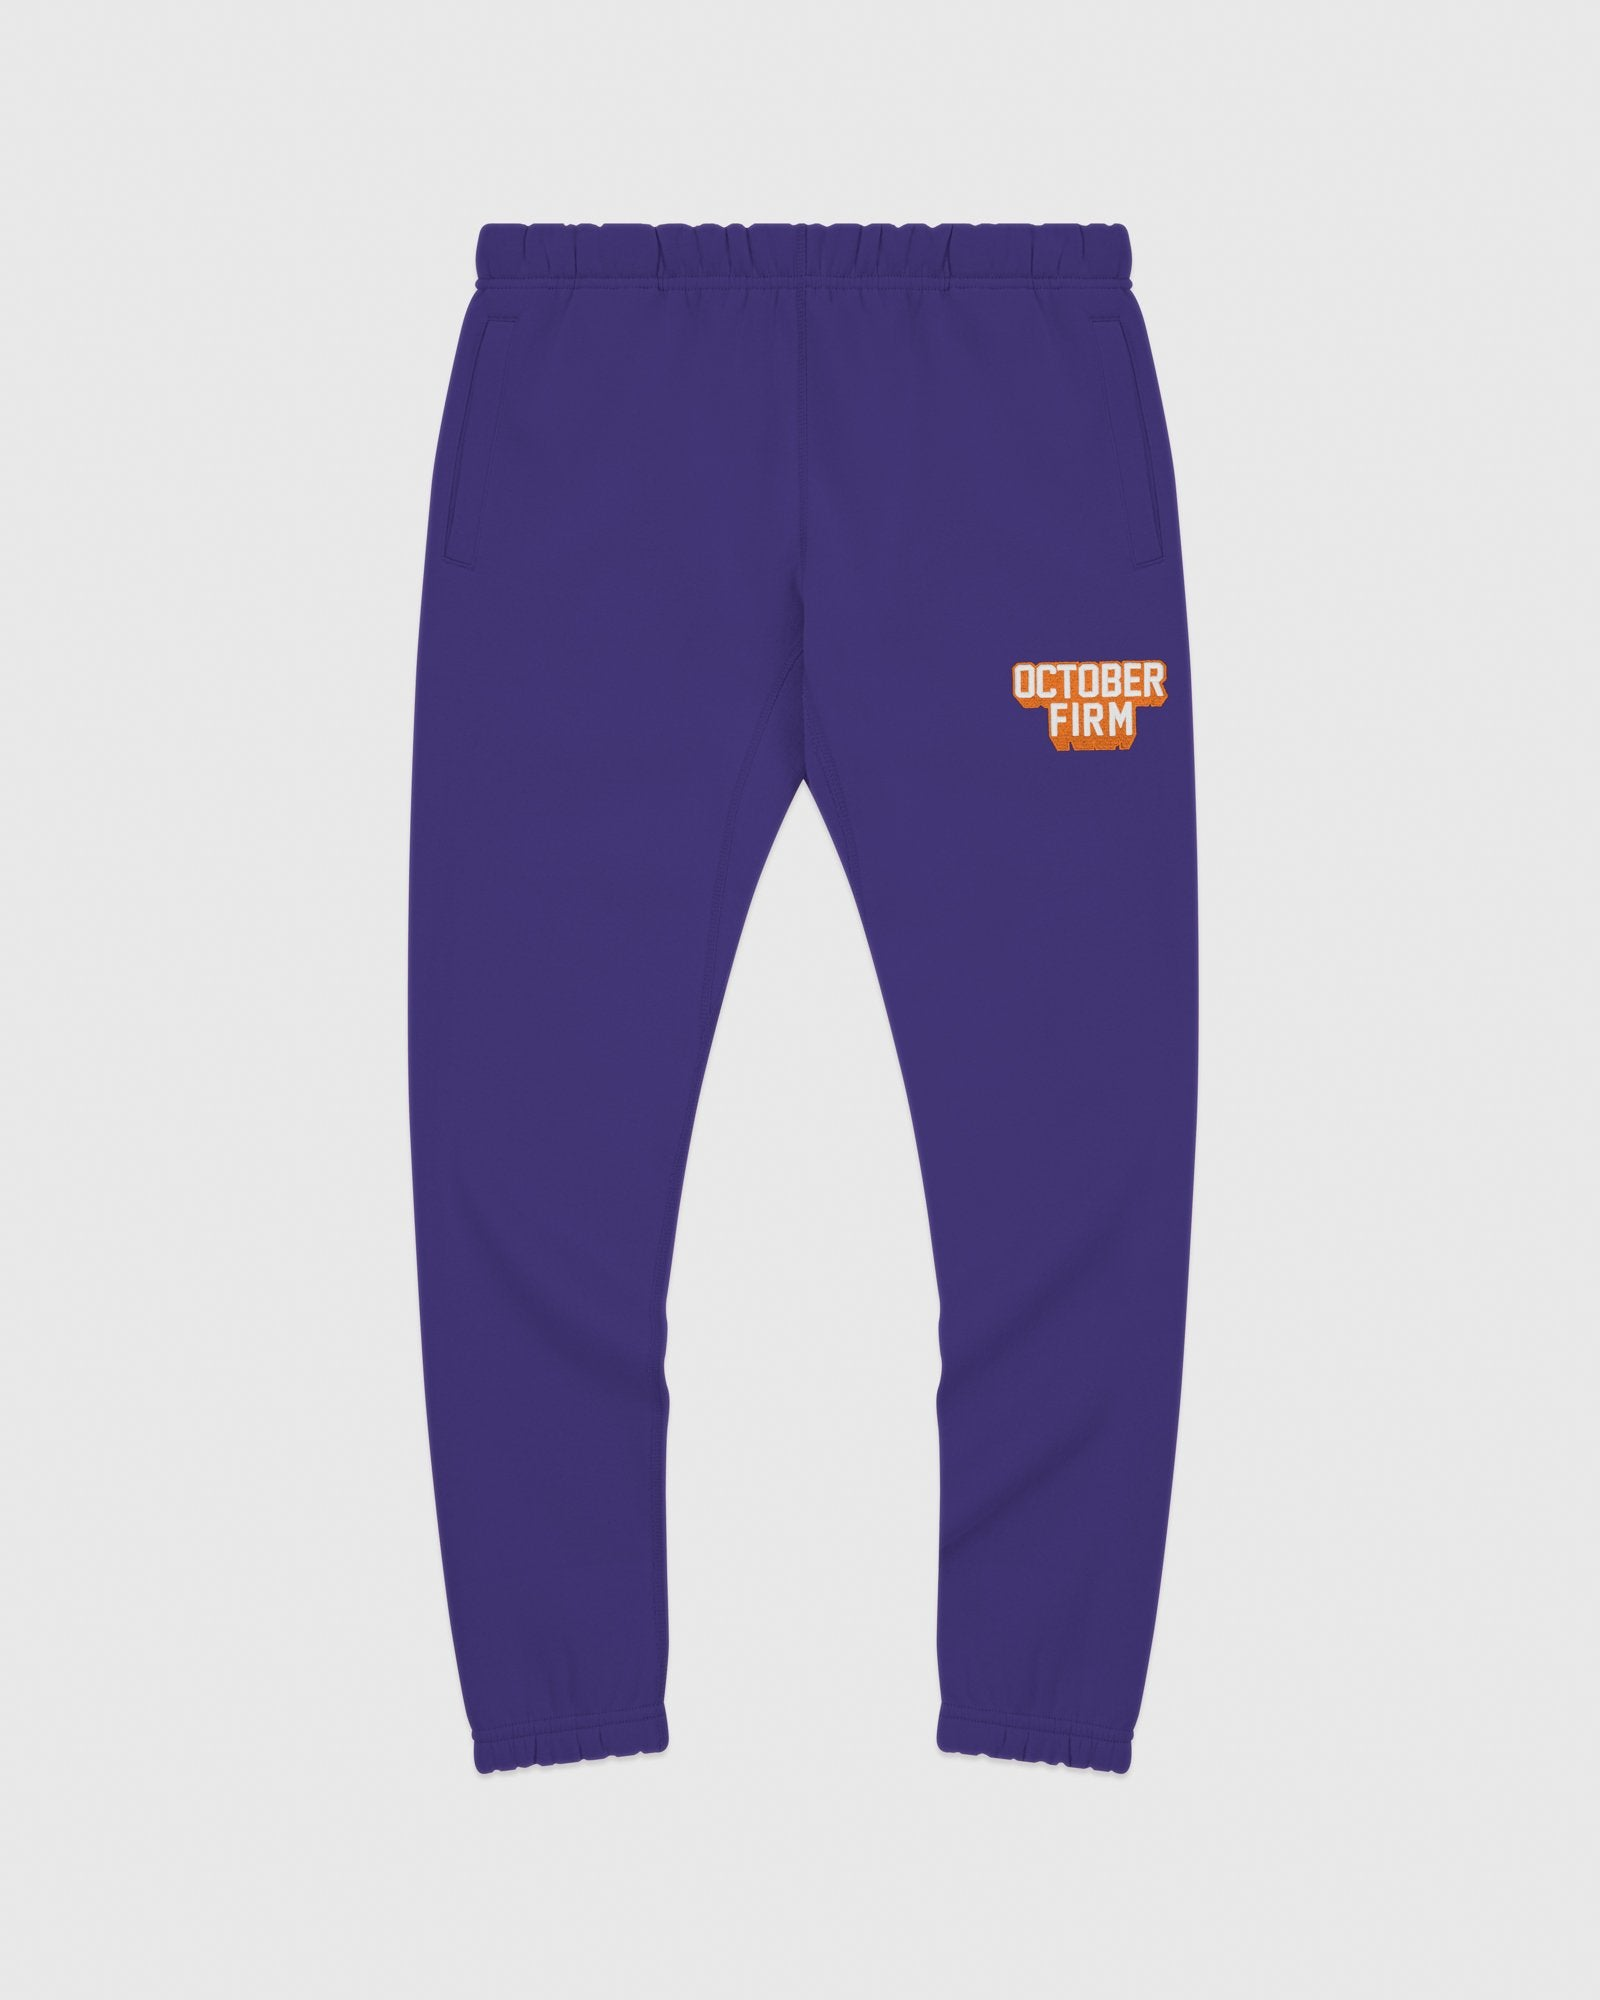 OCTOBER FIRM SHADOW SWEATPANT - PURPLE IMAGE #1